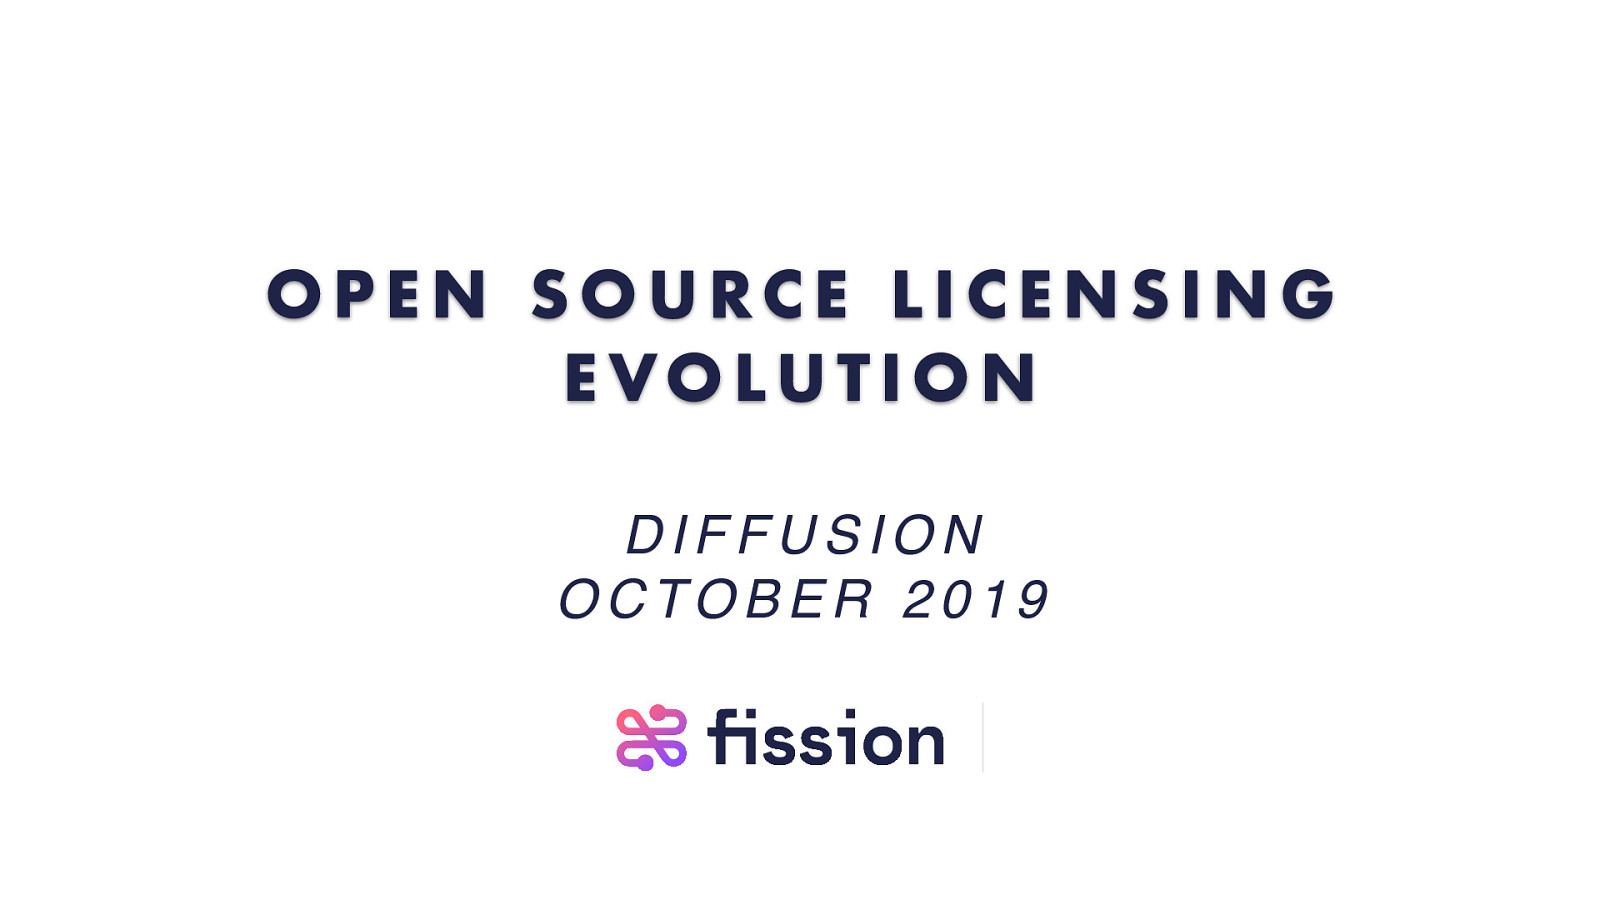 Open Source Licensing Evolution